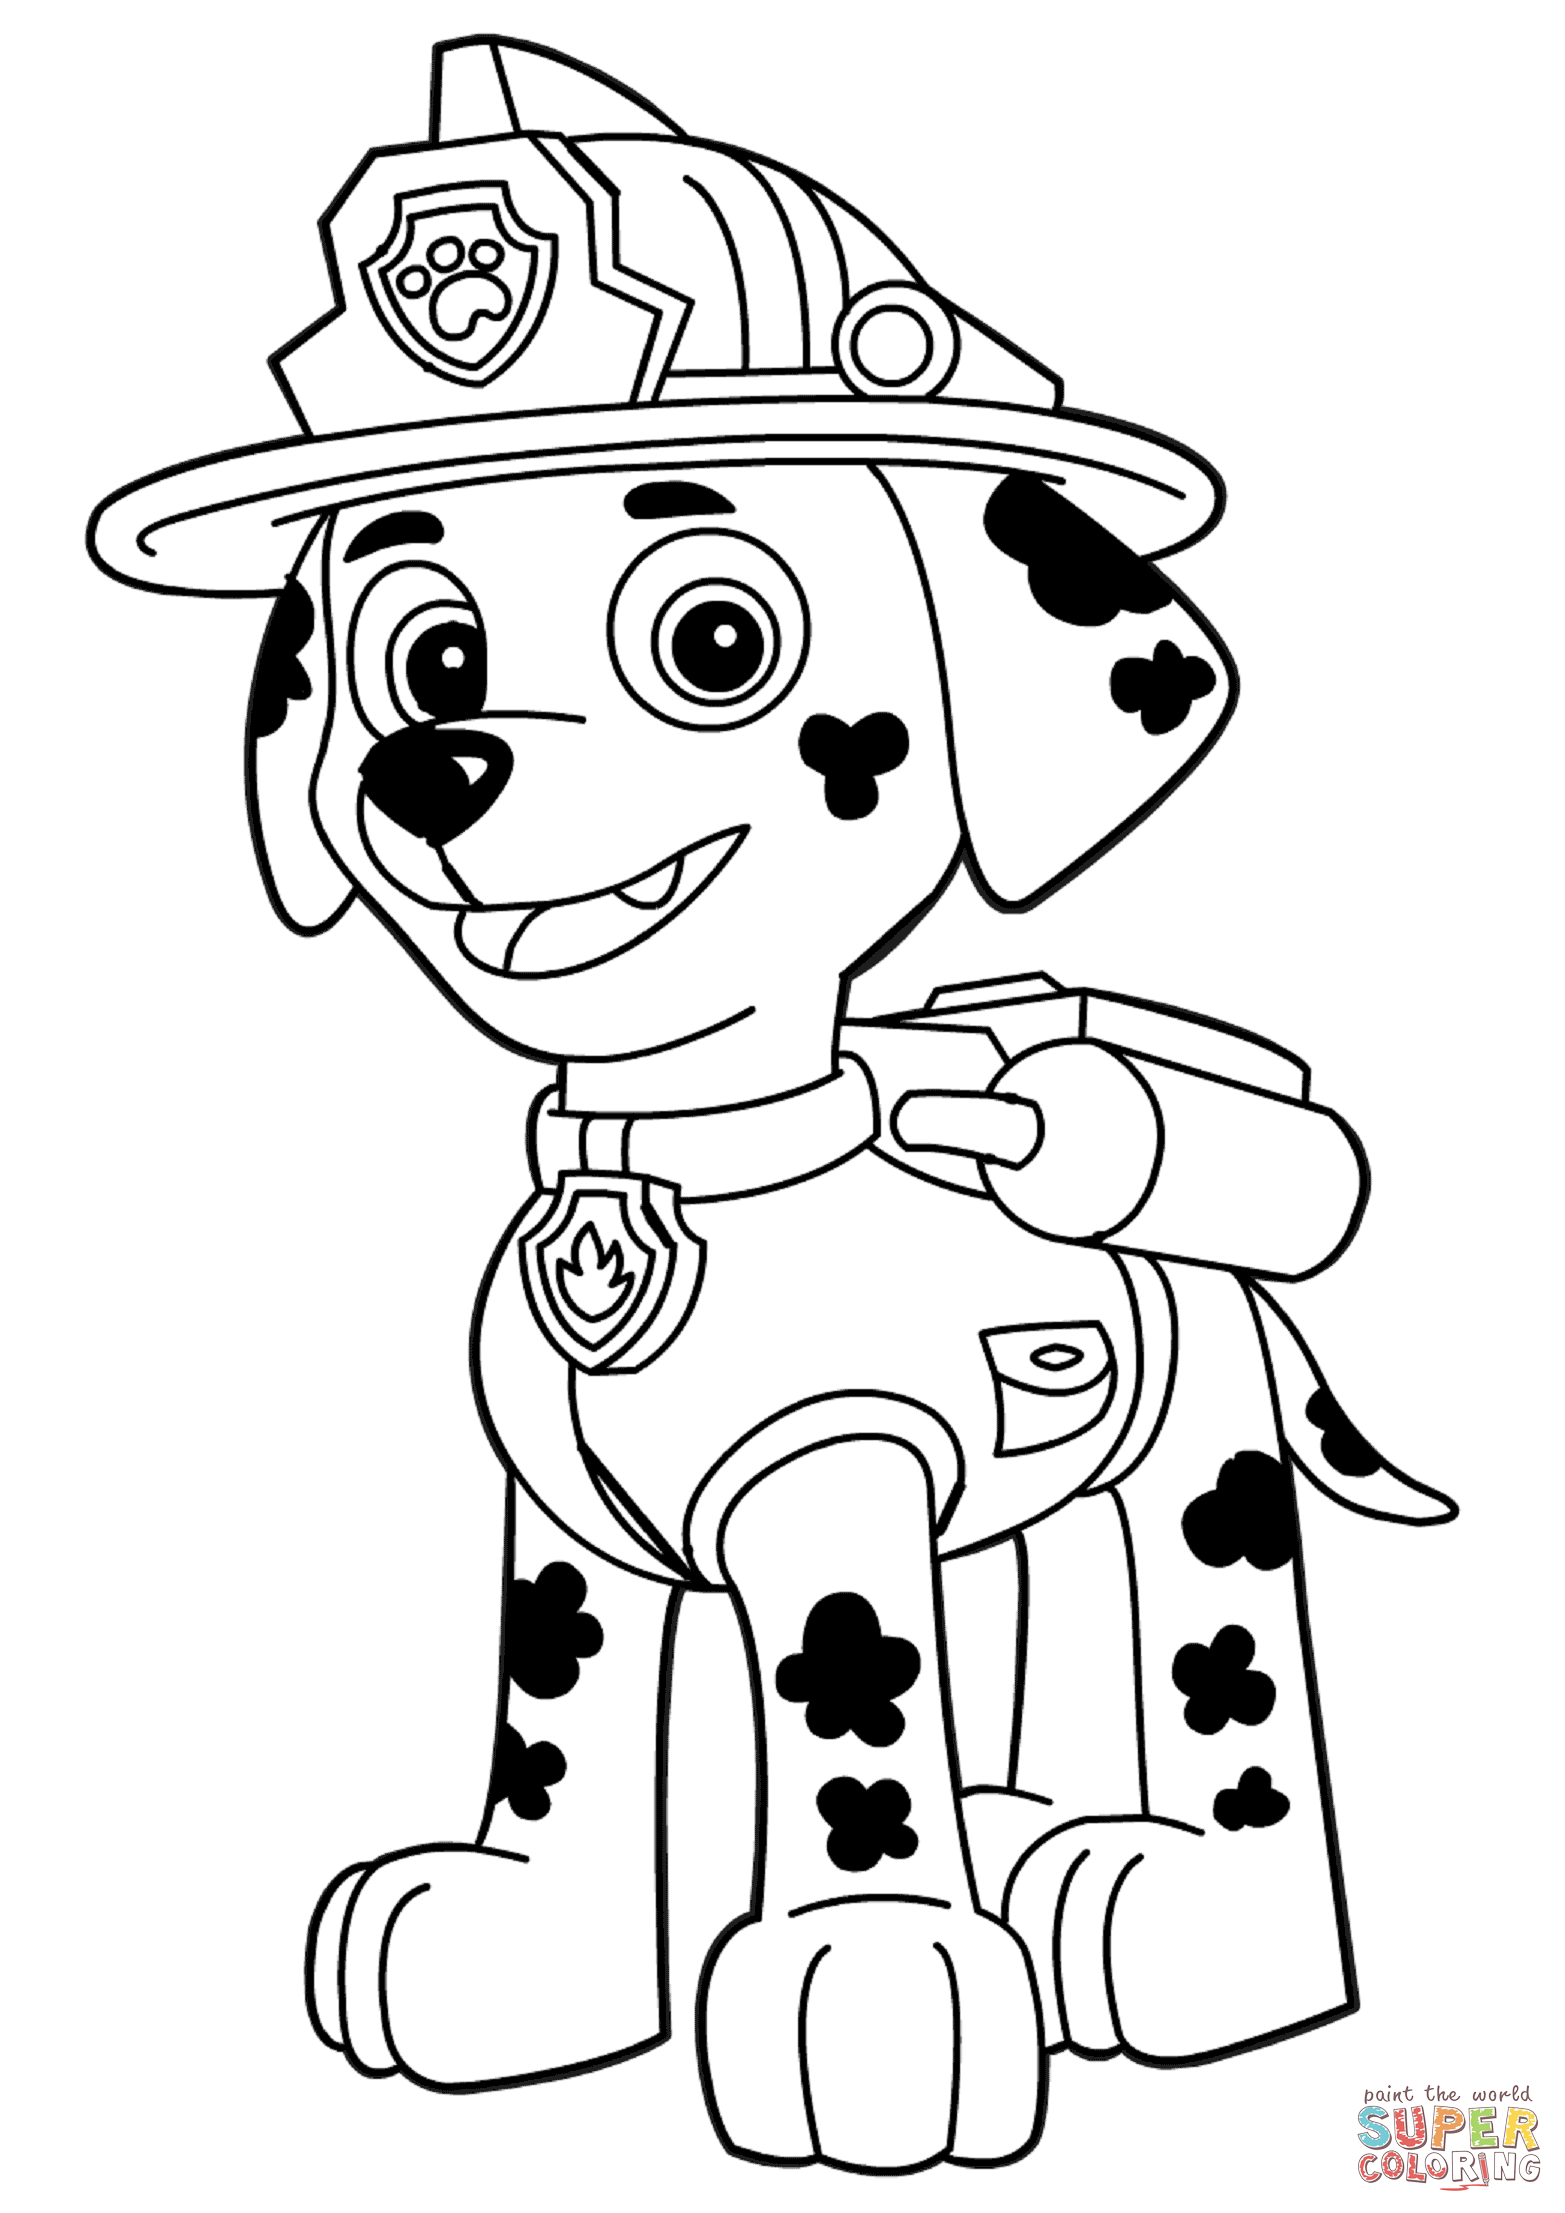 Paw Patrol Tracker Ausmalbilder : Image Result For Paw Patrol Clip Art Black And White Clipart For